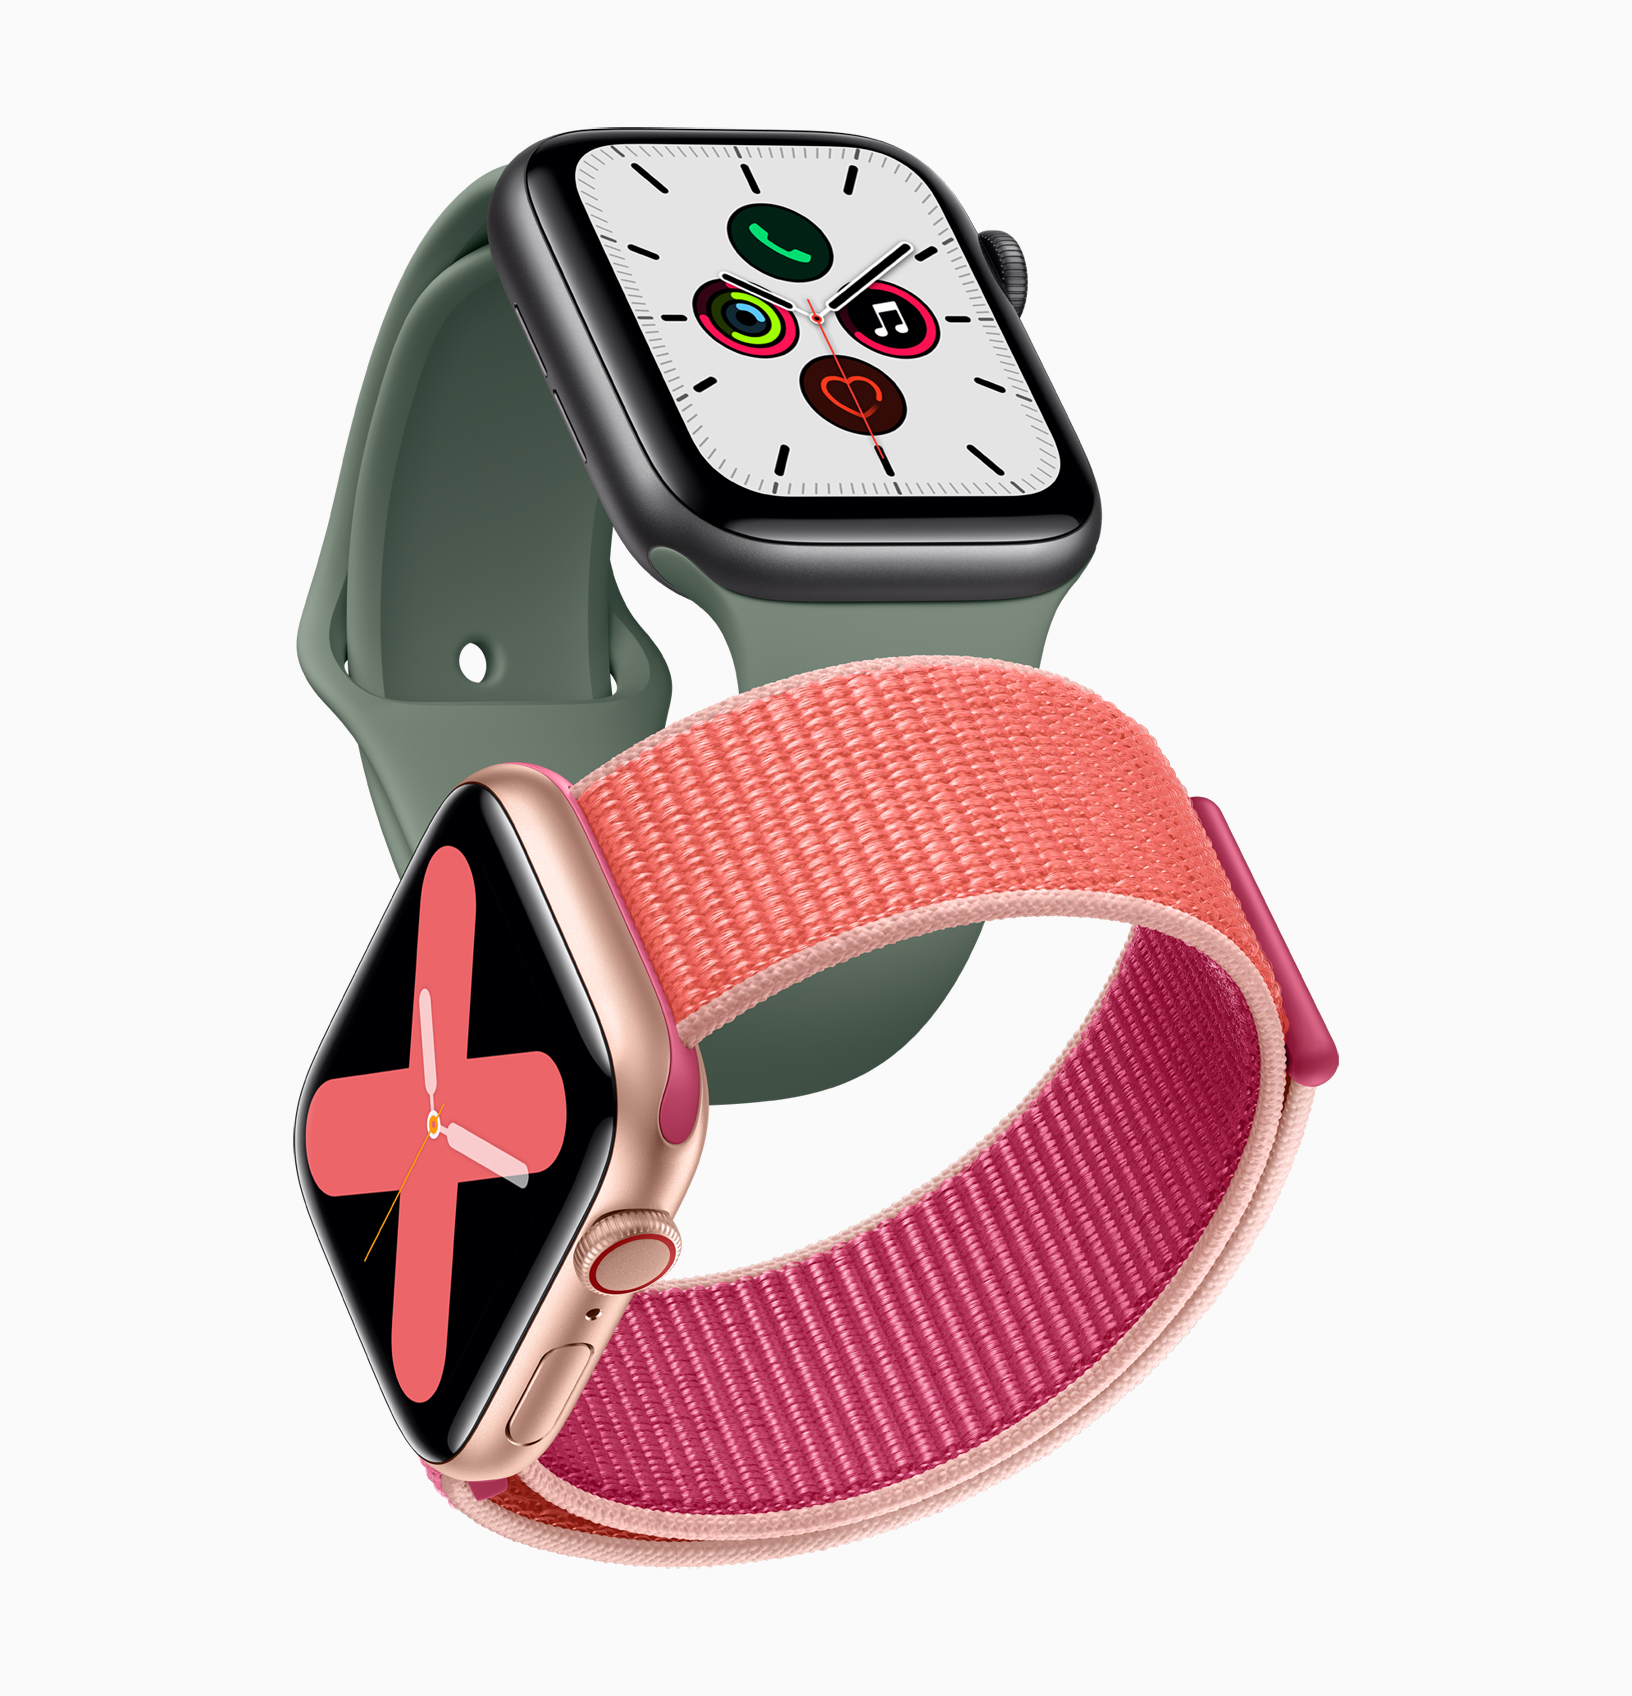 Apple Files Patent for Apple Watch Band-Based Hardware Sensors